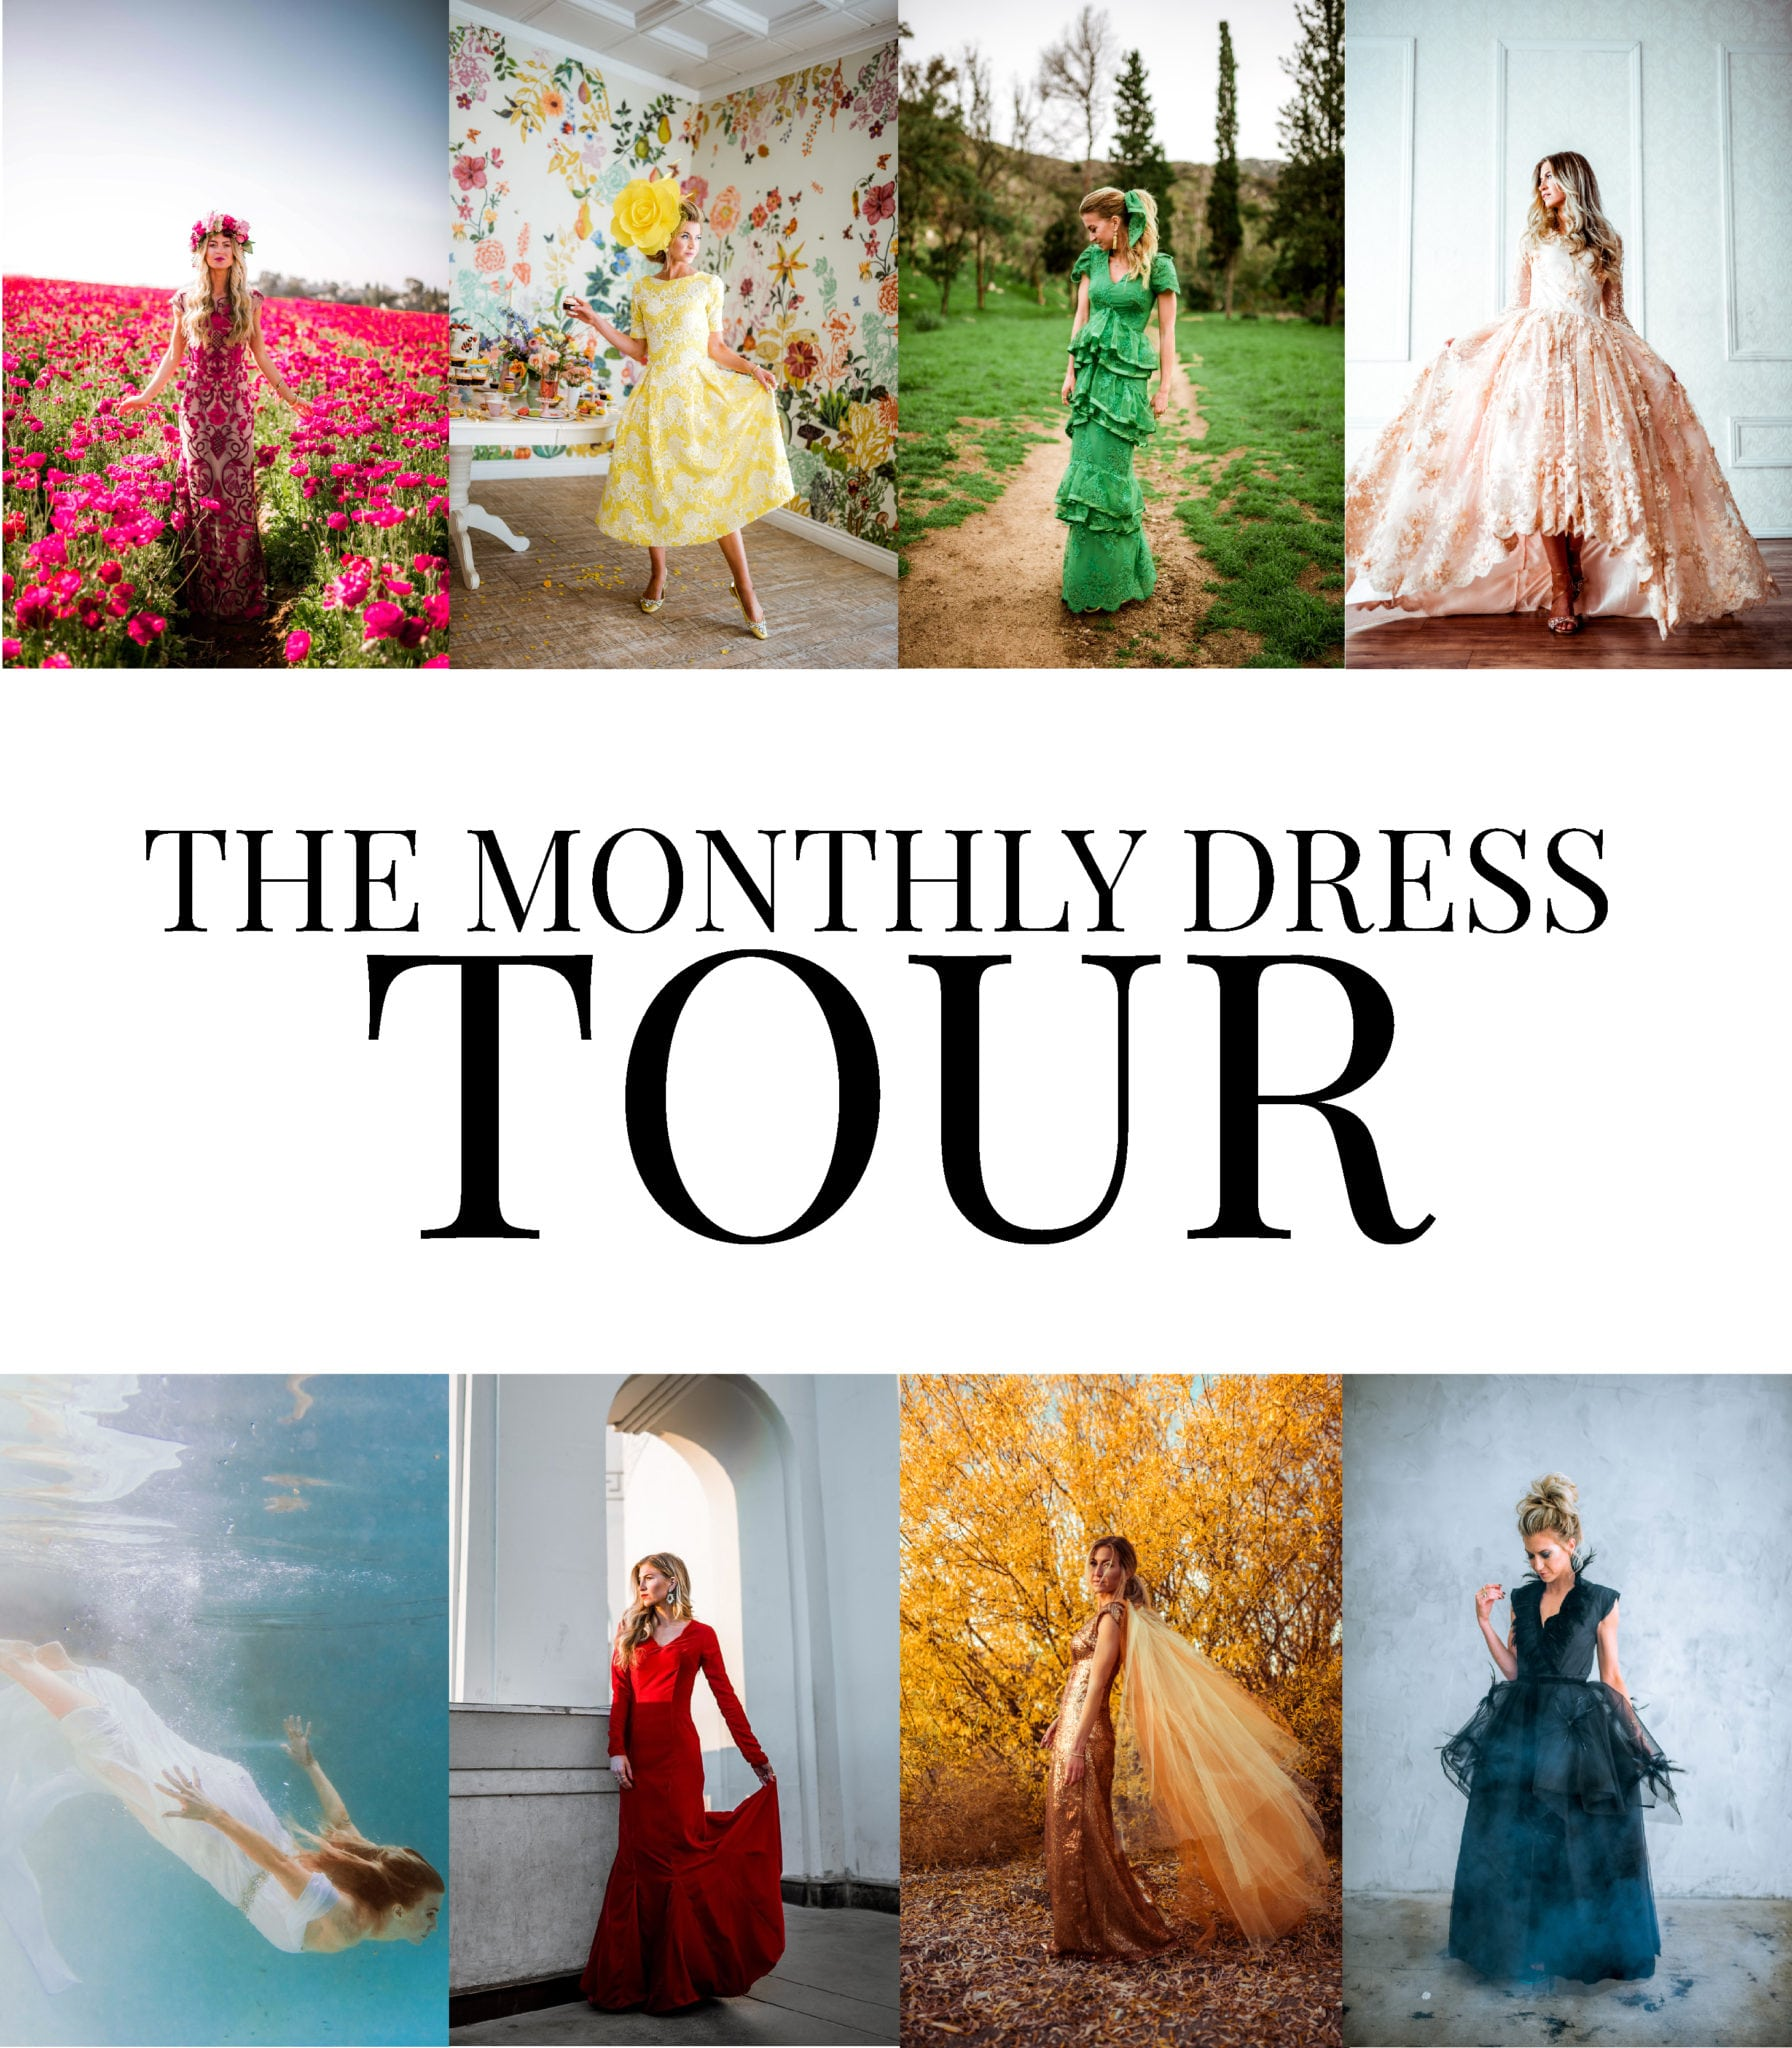 The Monthly Dress Tour by Leanne Barlow